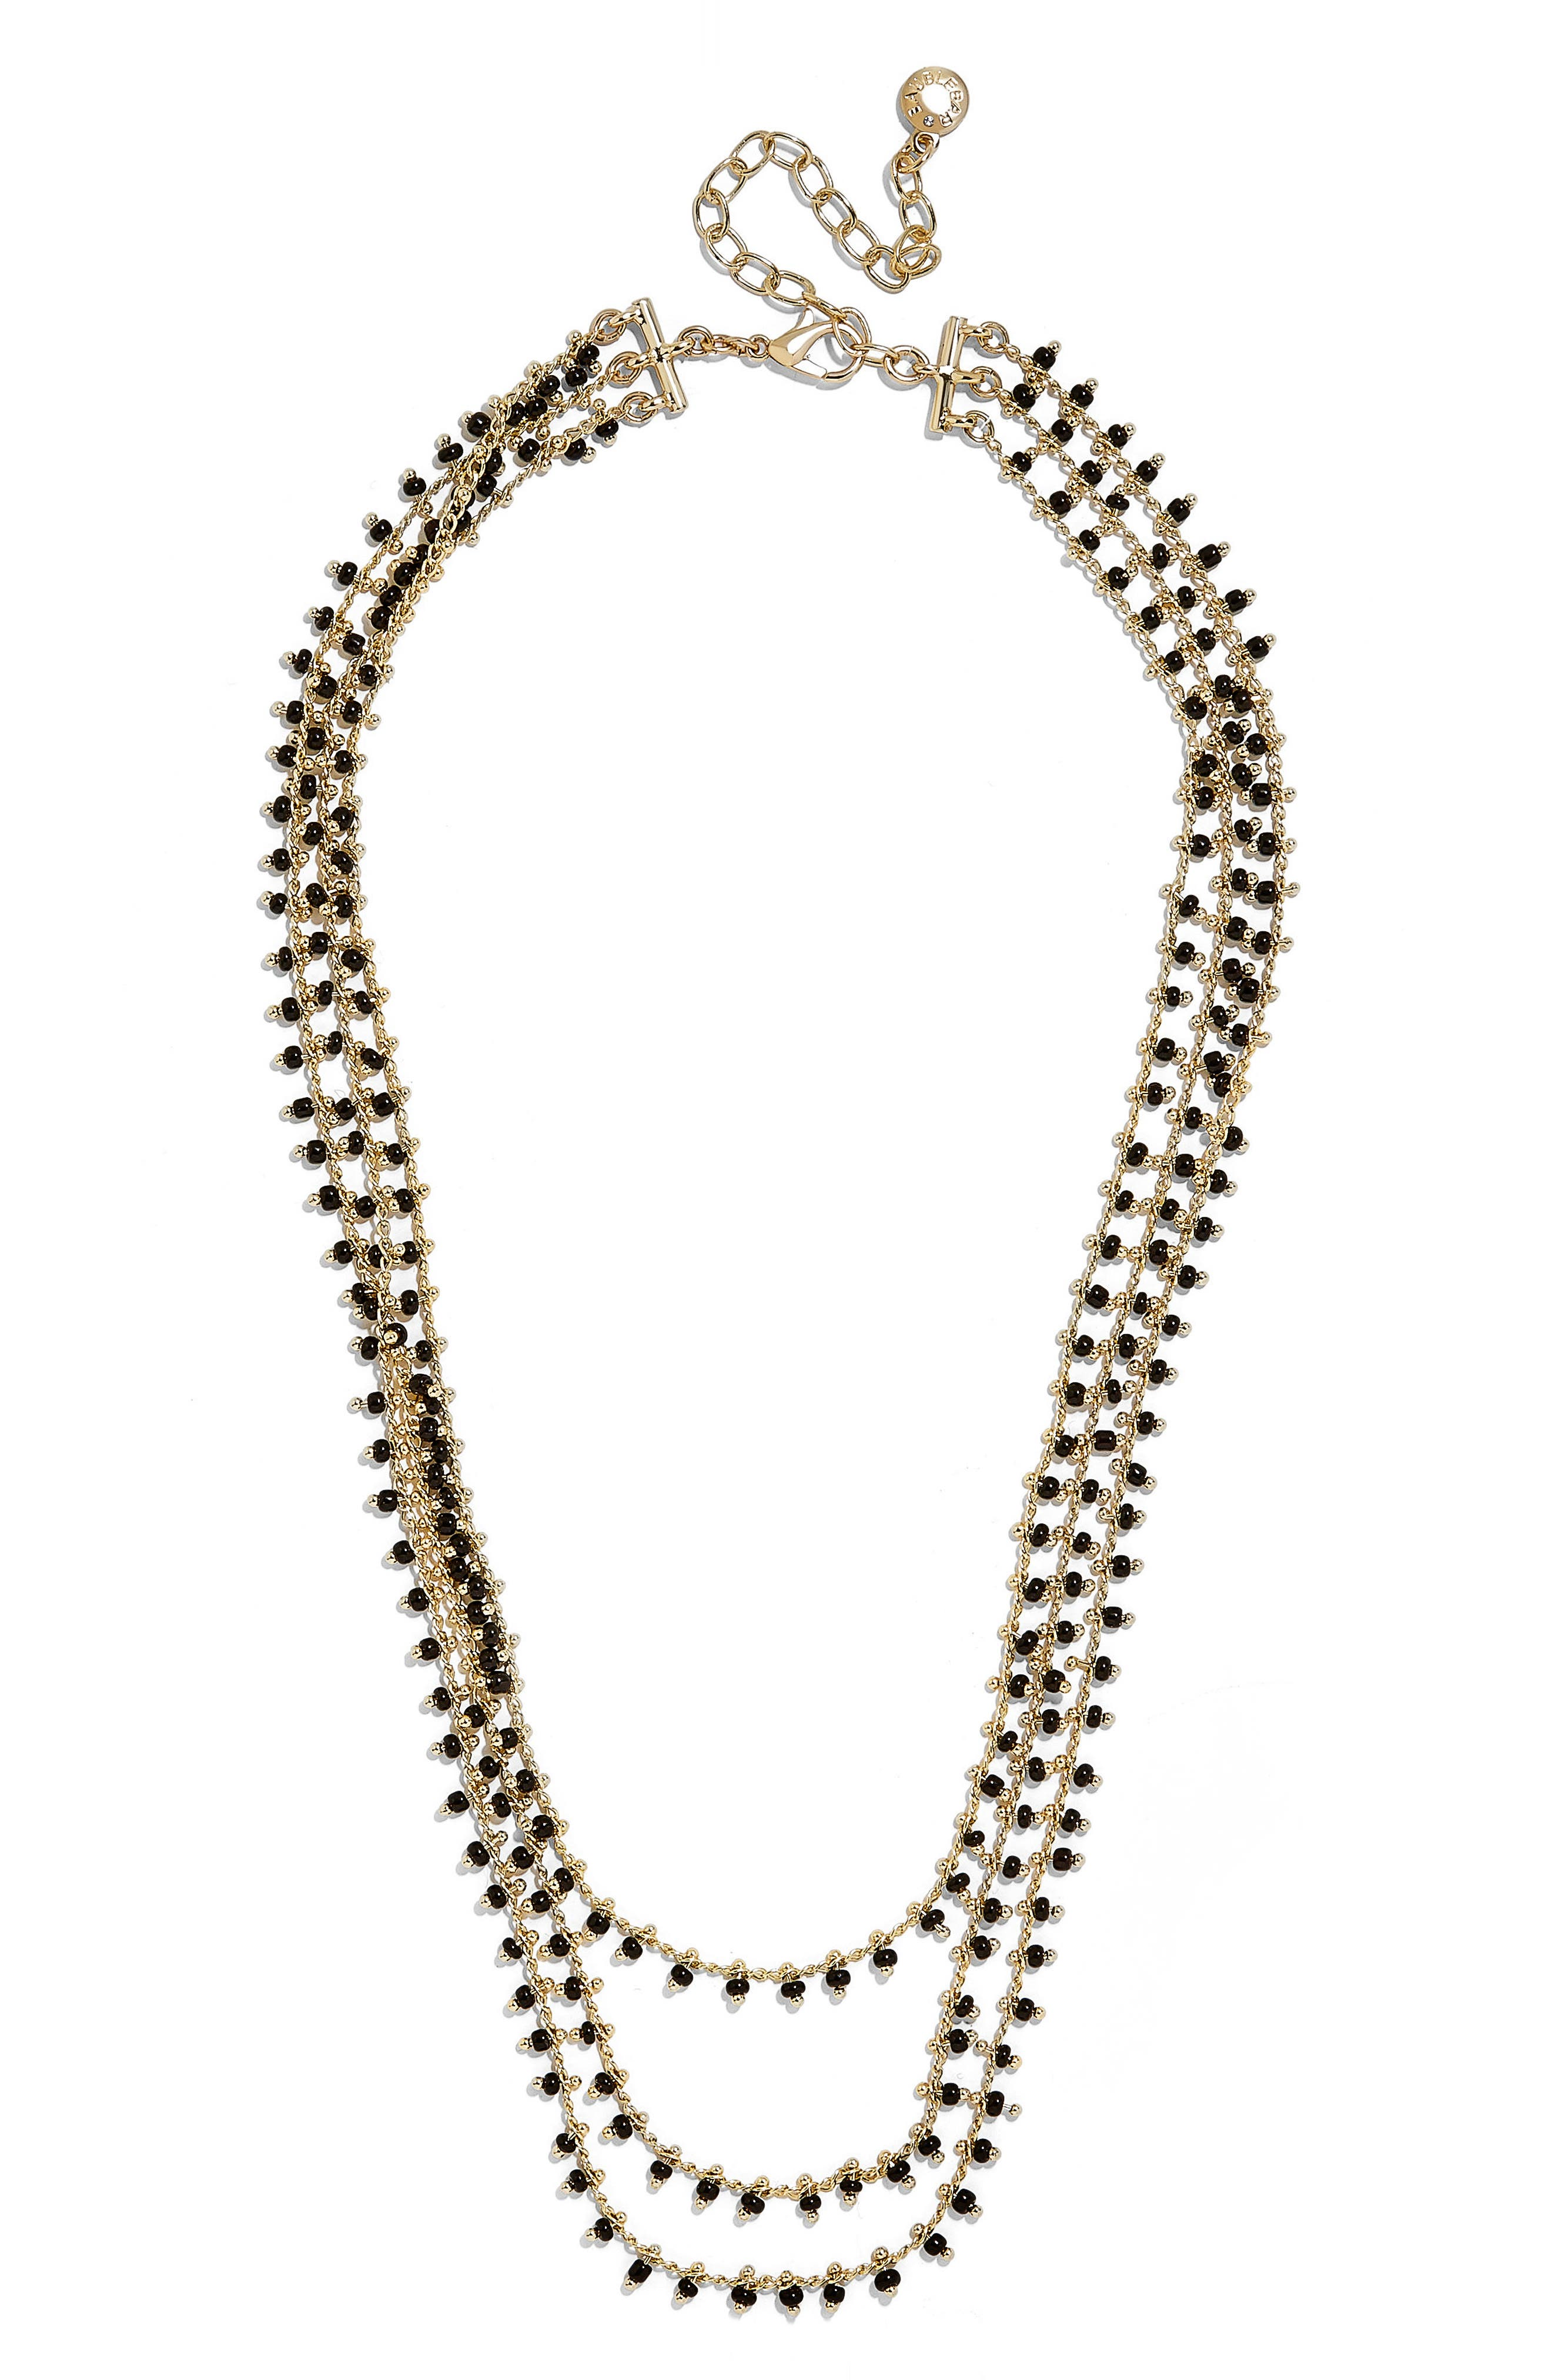 BAUBLEBAR Kirrali Beaded Chain Necklace, Main, color, 001